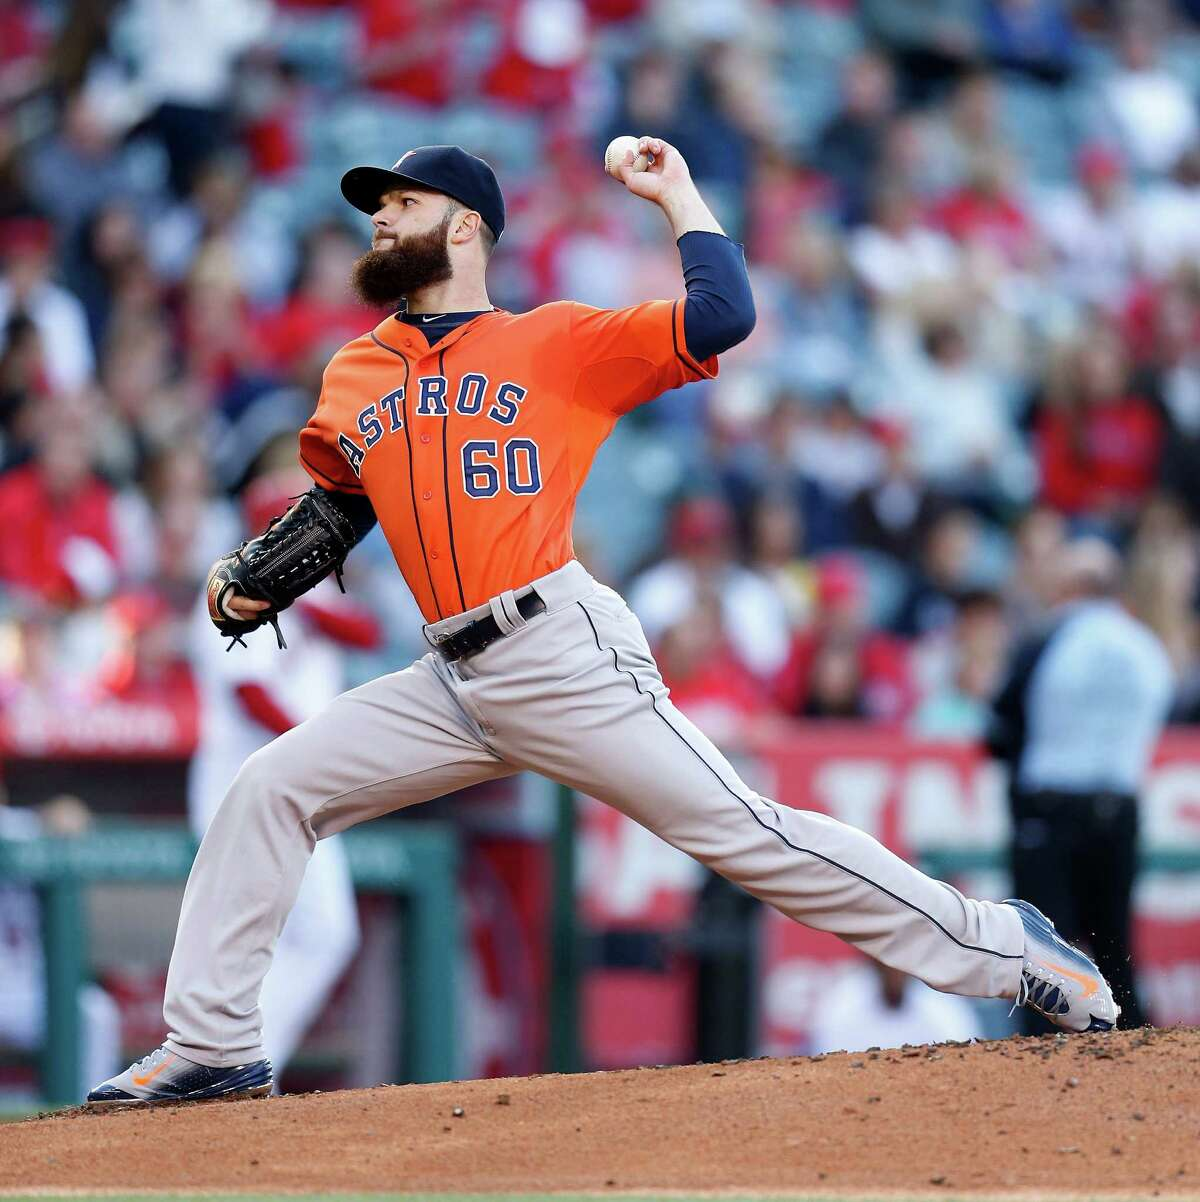 Astros starting pitcher Dallas Keuchel led the American League in victories and innings pitched.